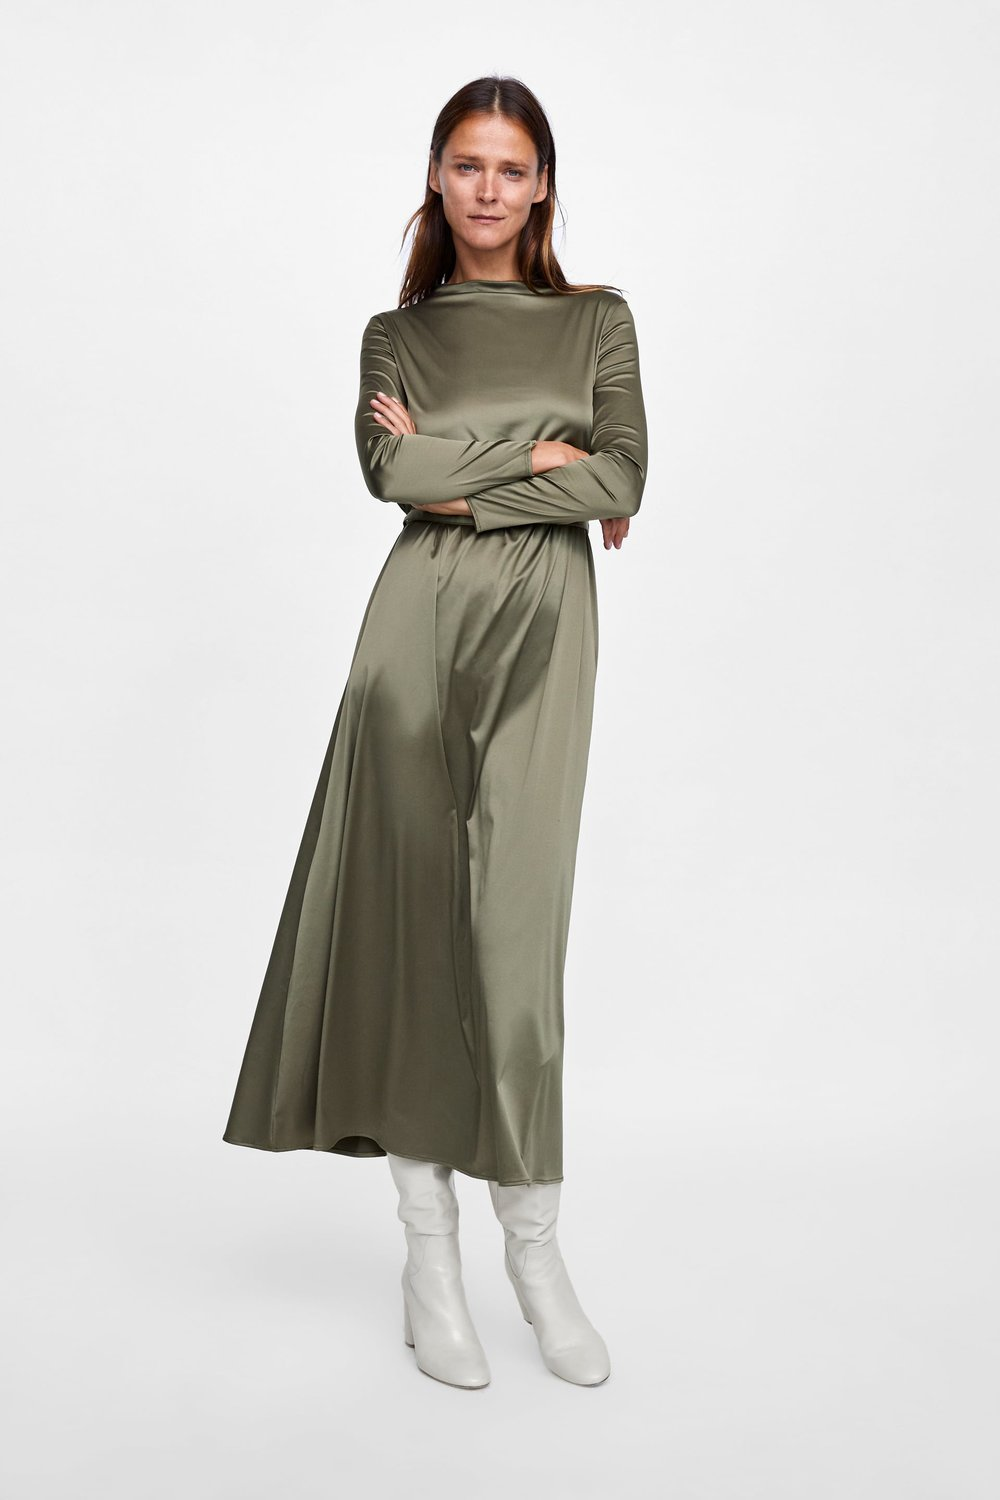 https://www.zara.com/ca/en/special-garment-sateen-dress-p04770460.html?v1=7436009&v2=1074540